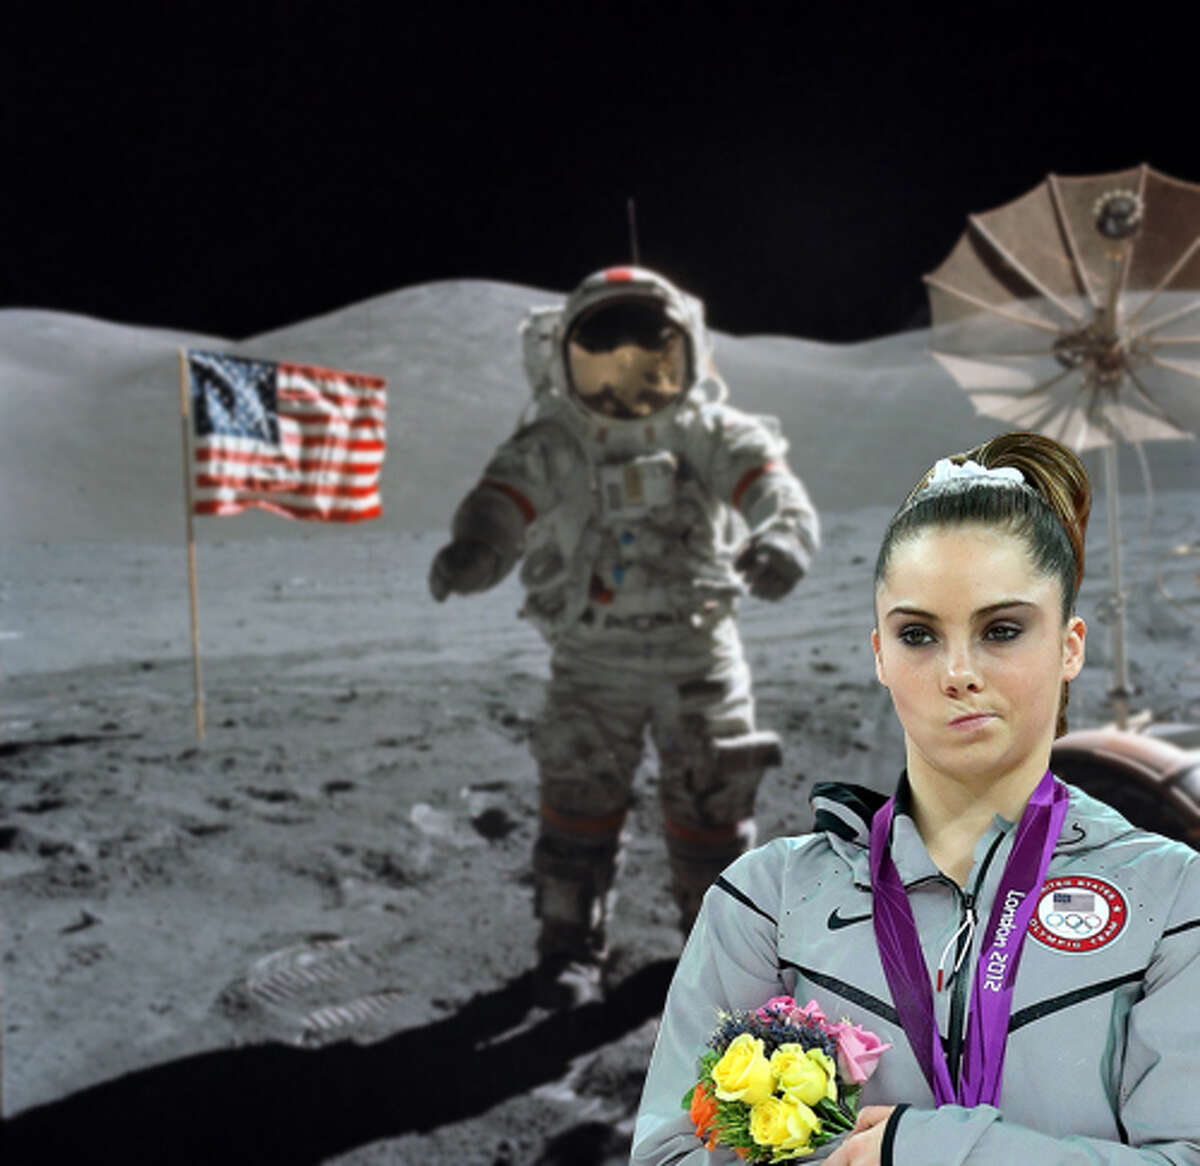 Memes had a big year in 2012, thanks to the presidential election and summer Olympics. Here's